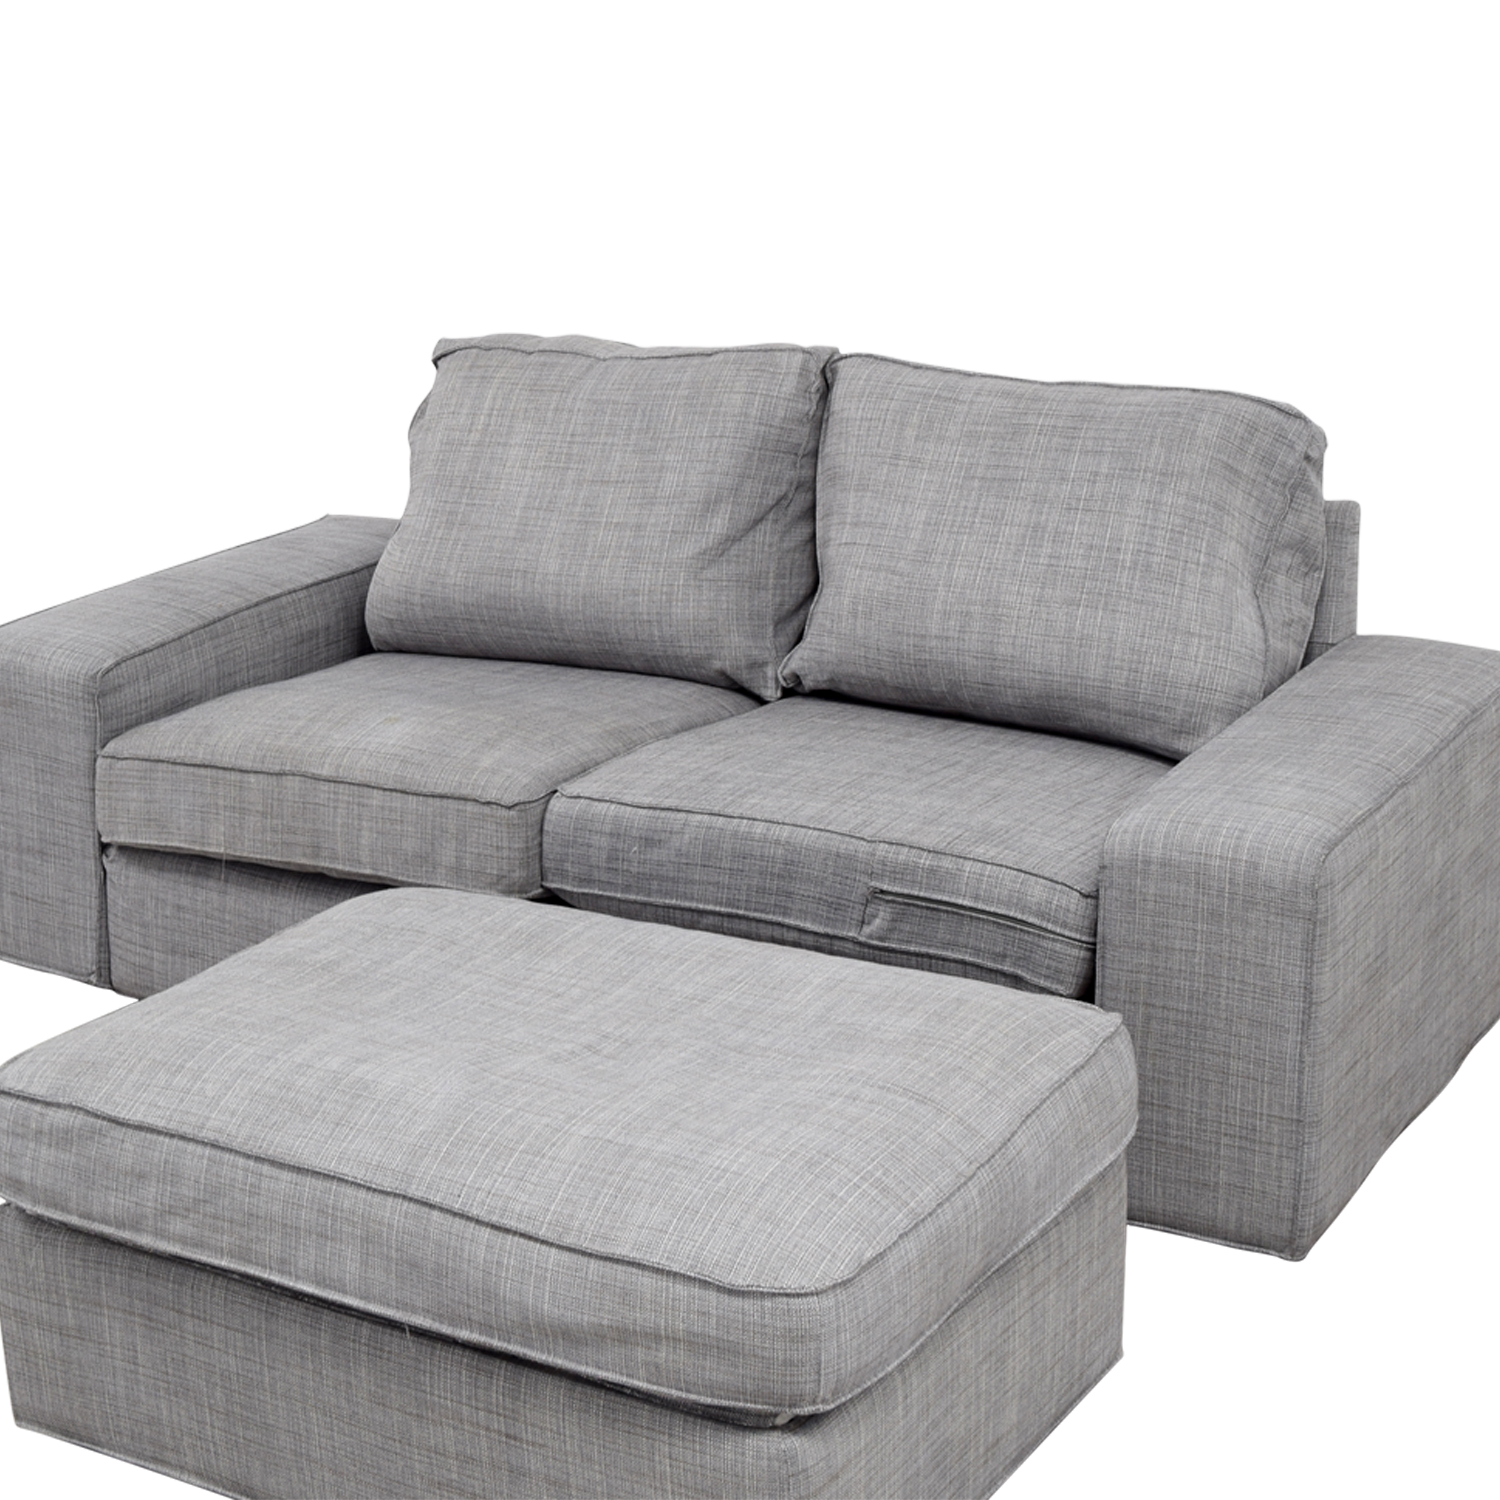 Ikea Kivik Sofa 64 Off Ikea Ikea Kivik Gray Sofa And Ottoman Sofas